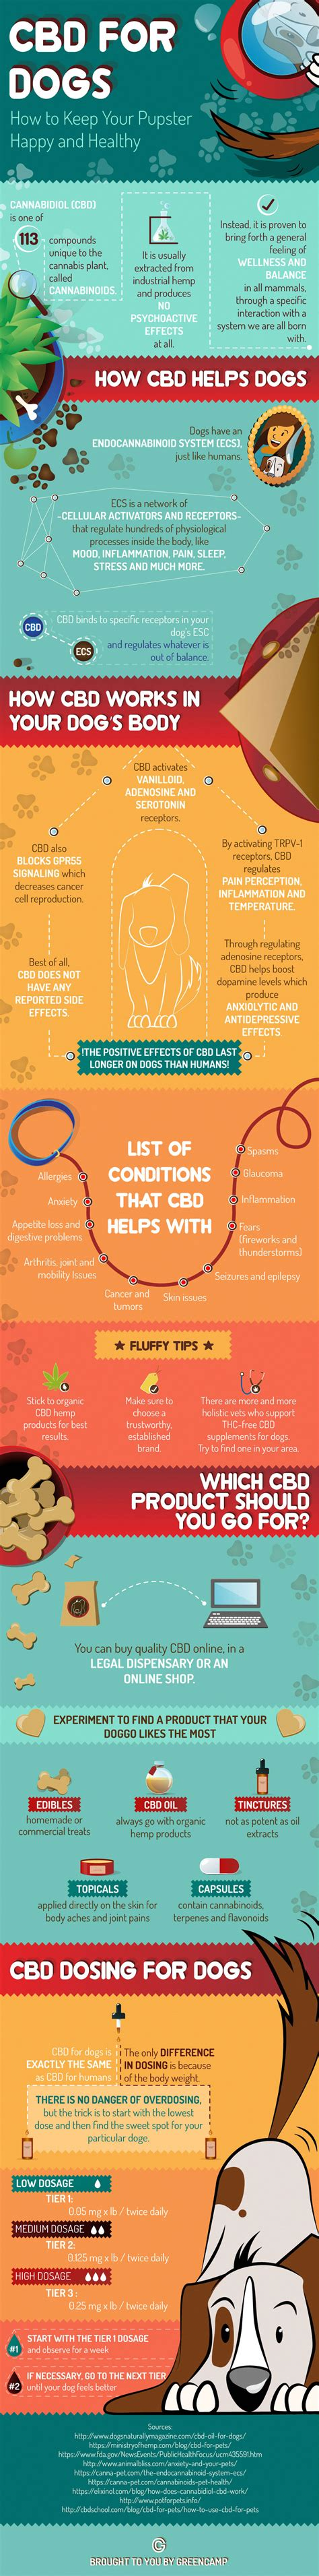 cbd for dogs all you need to about cbd for dogs